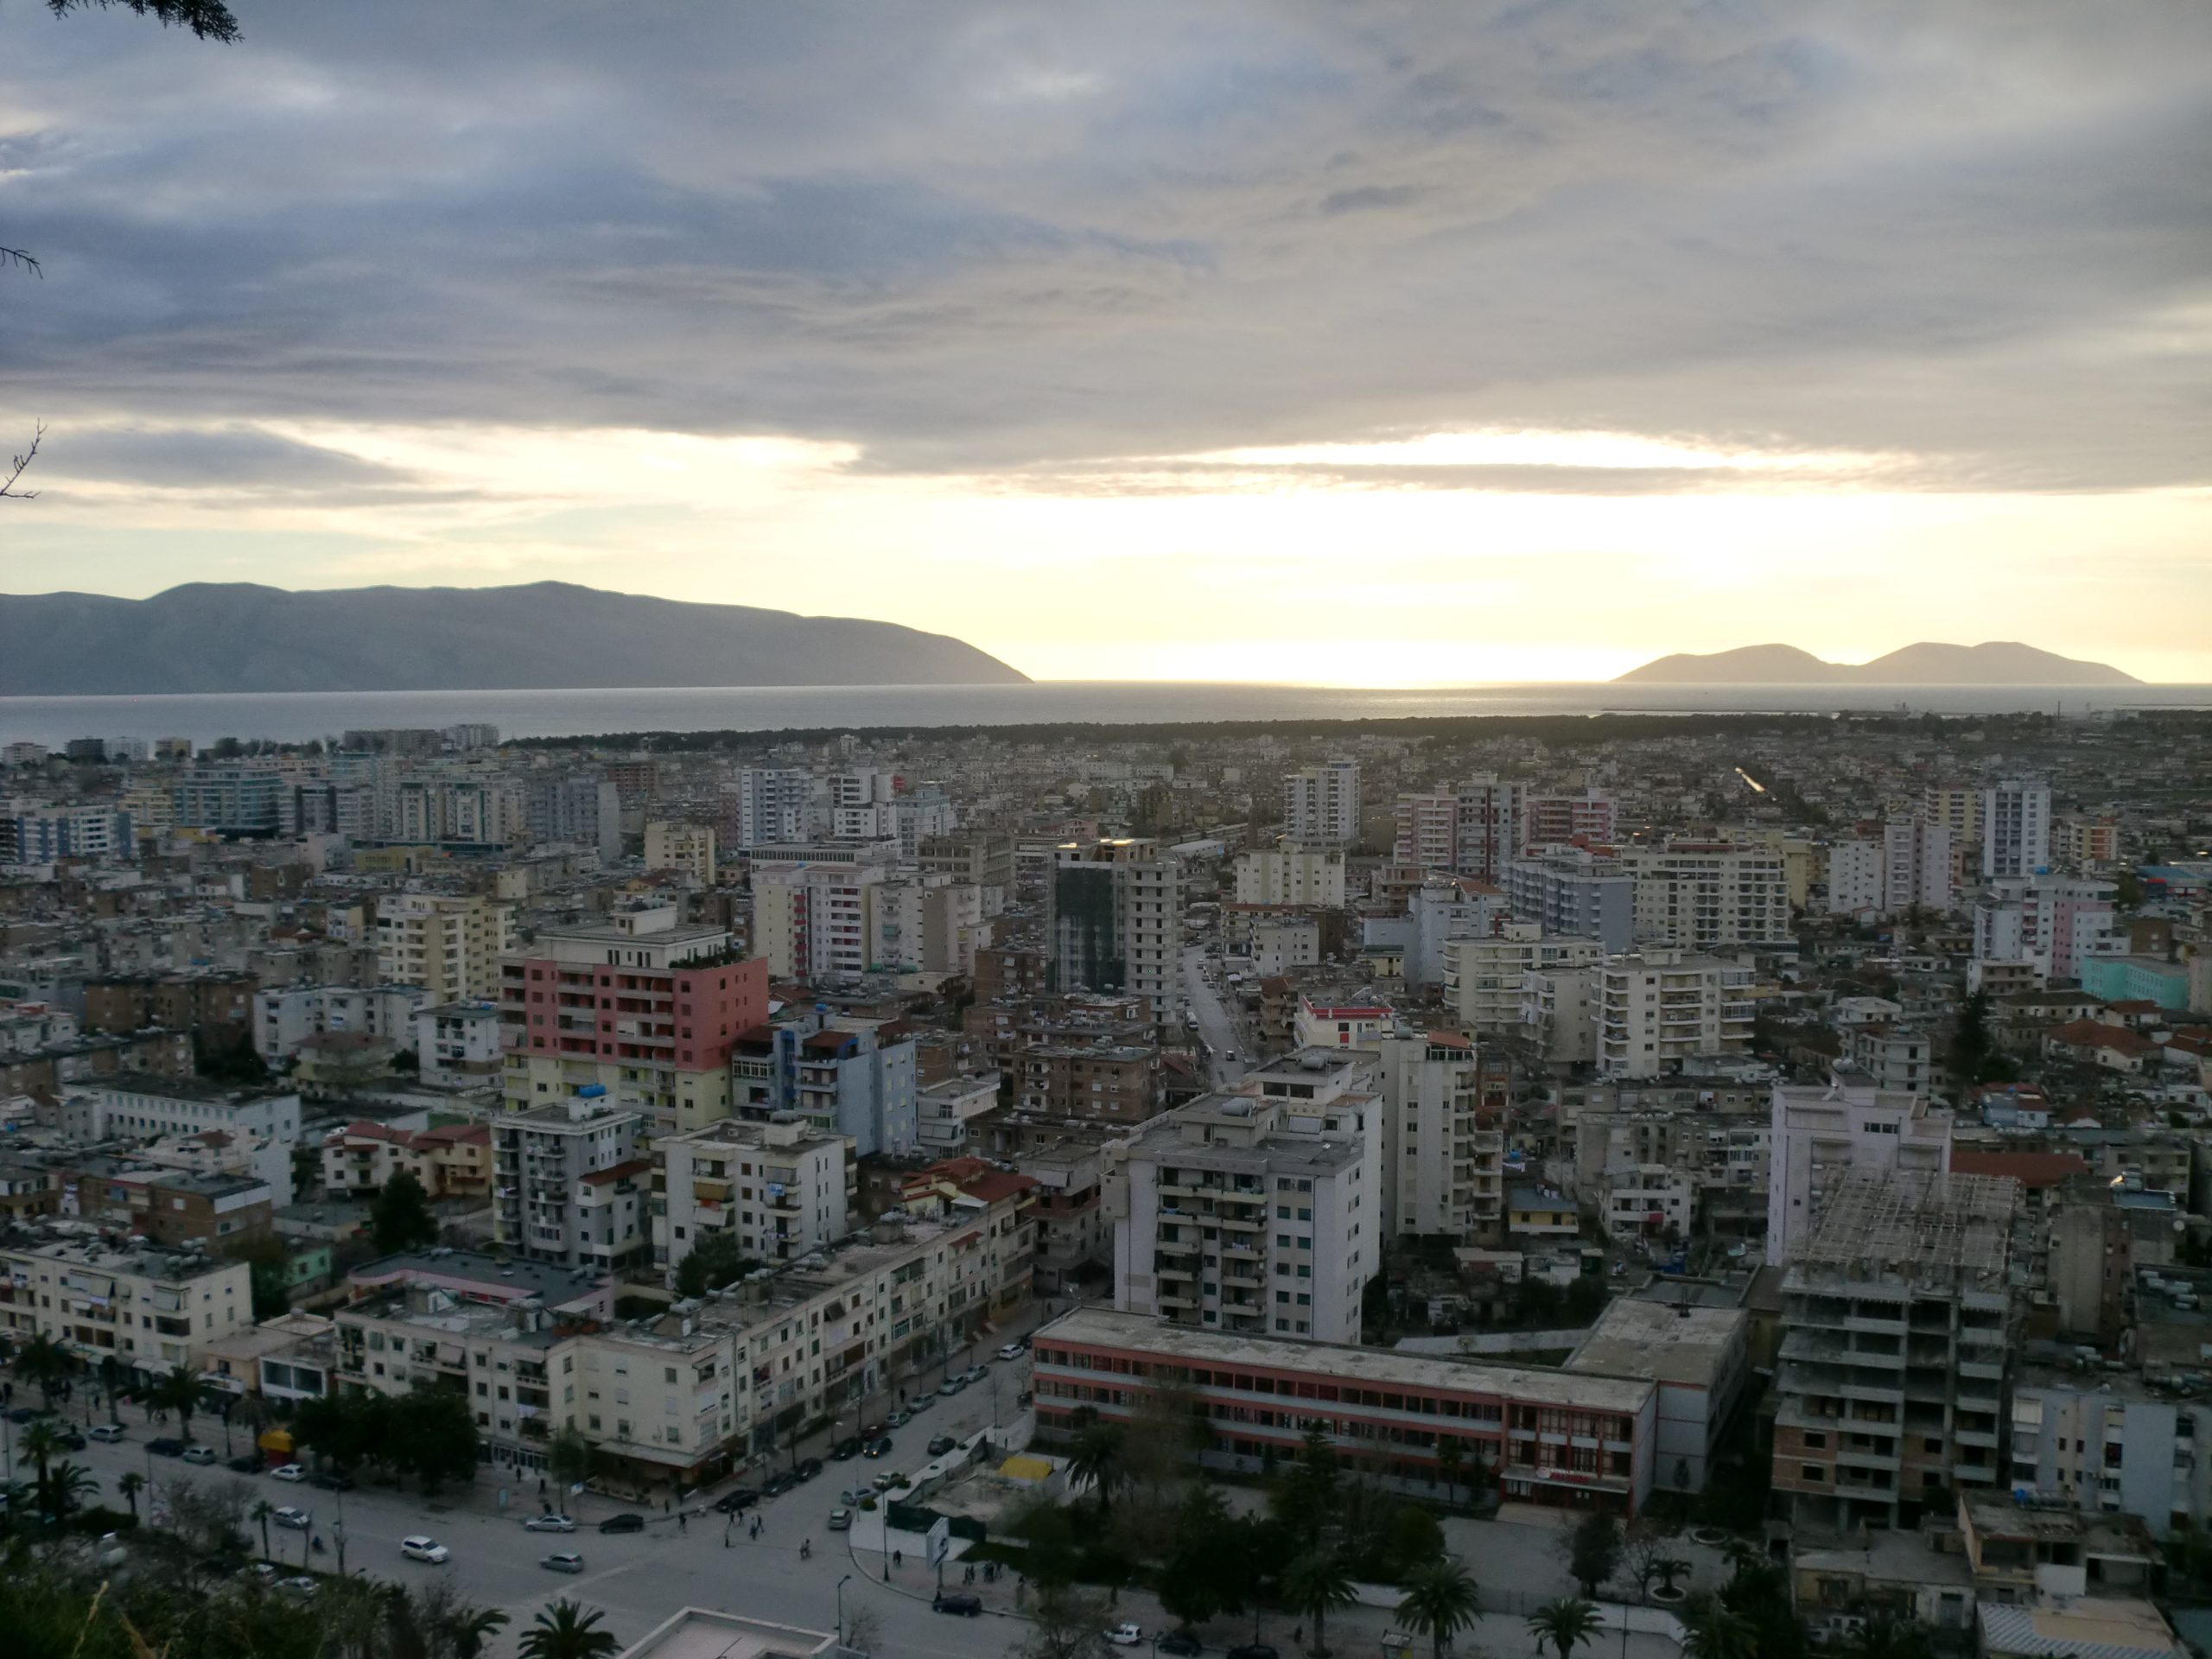 vlora view from kuzum baba